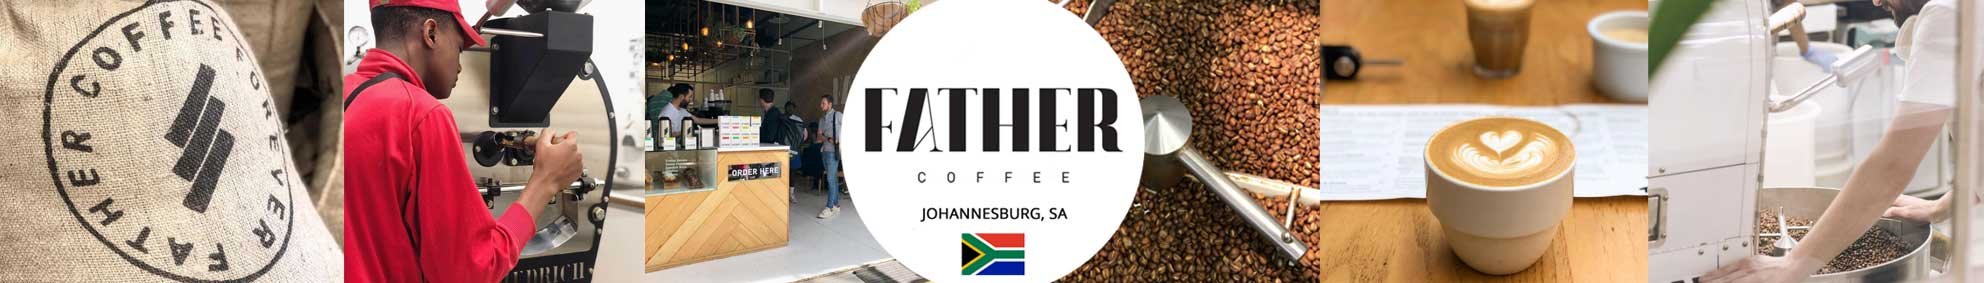 Father Coffee Johannesburg South Africa on UK Best Coffee Subscription